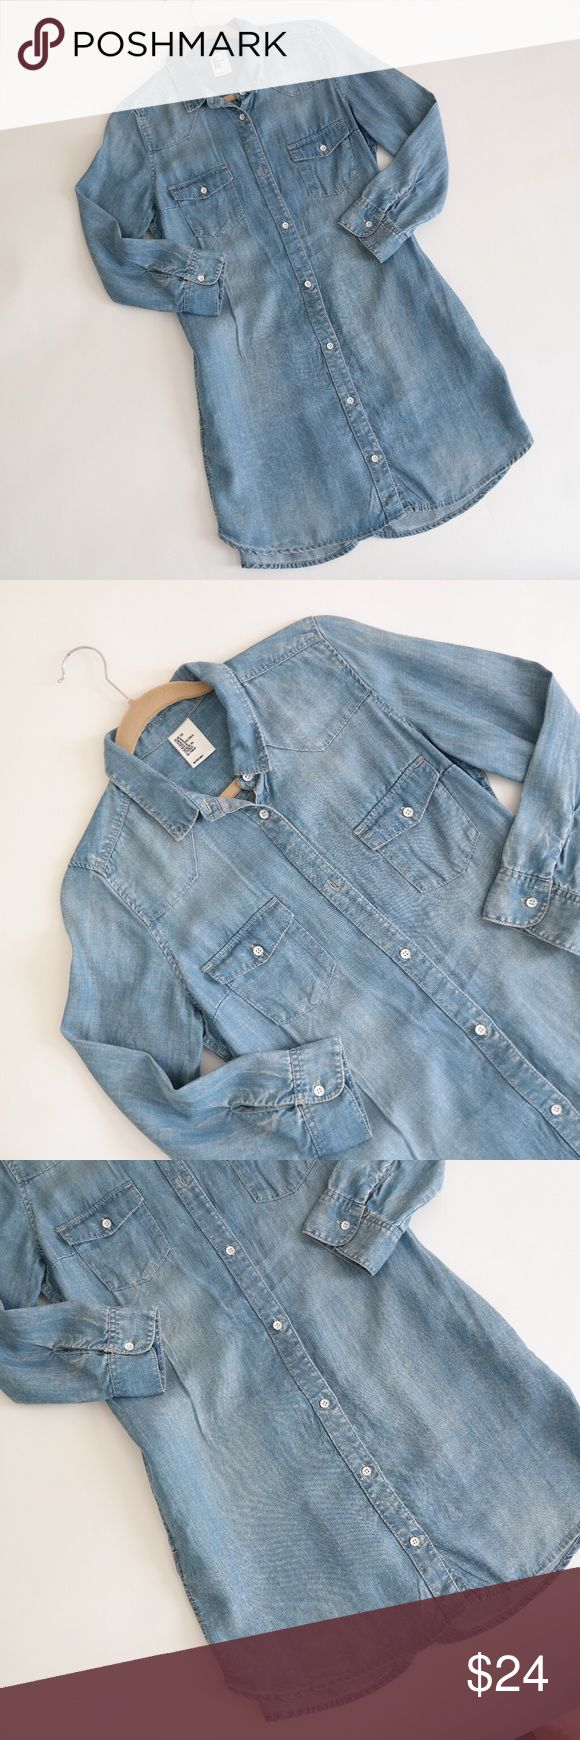 ZARA Chambray Denim Shirt Dress A relaxed, comfortable chambray denim shirt dress from Zara. Worn only once. Looks great belted or alone and can even be worn over another dress. Lightweight fabric. Zara Dresses Long Sleeve